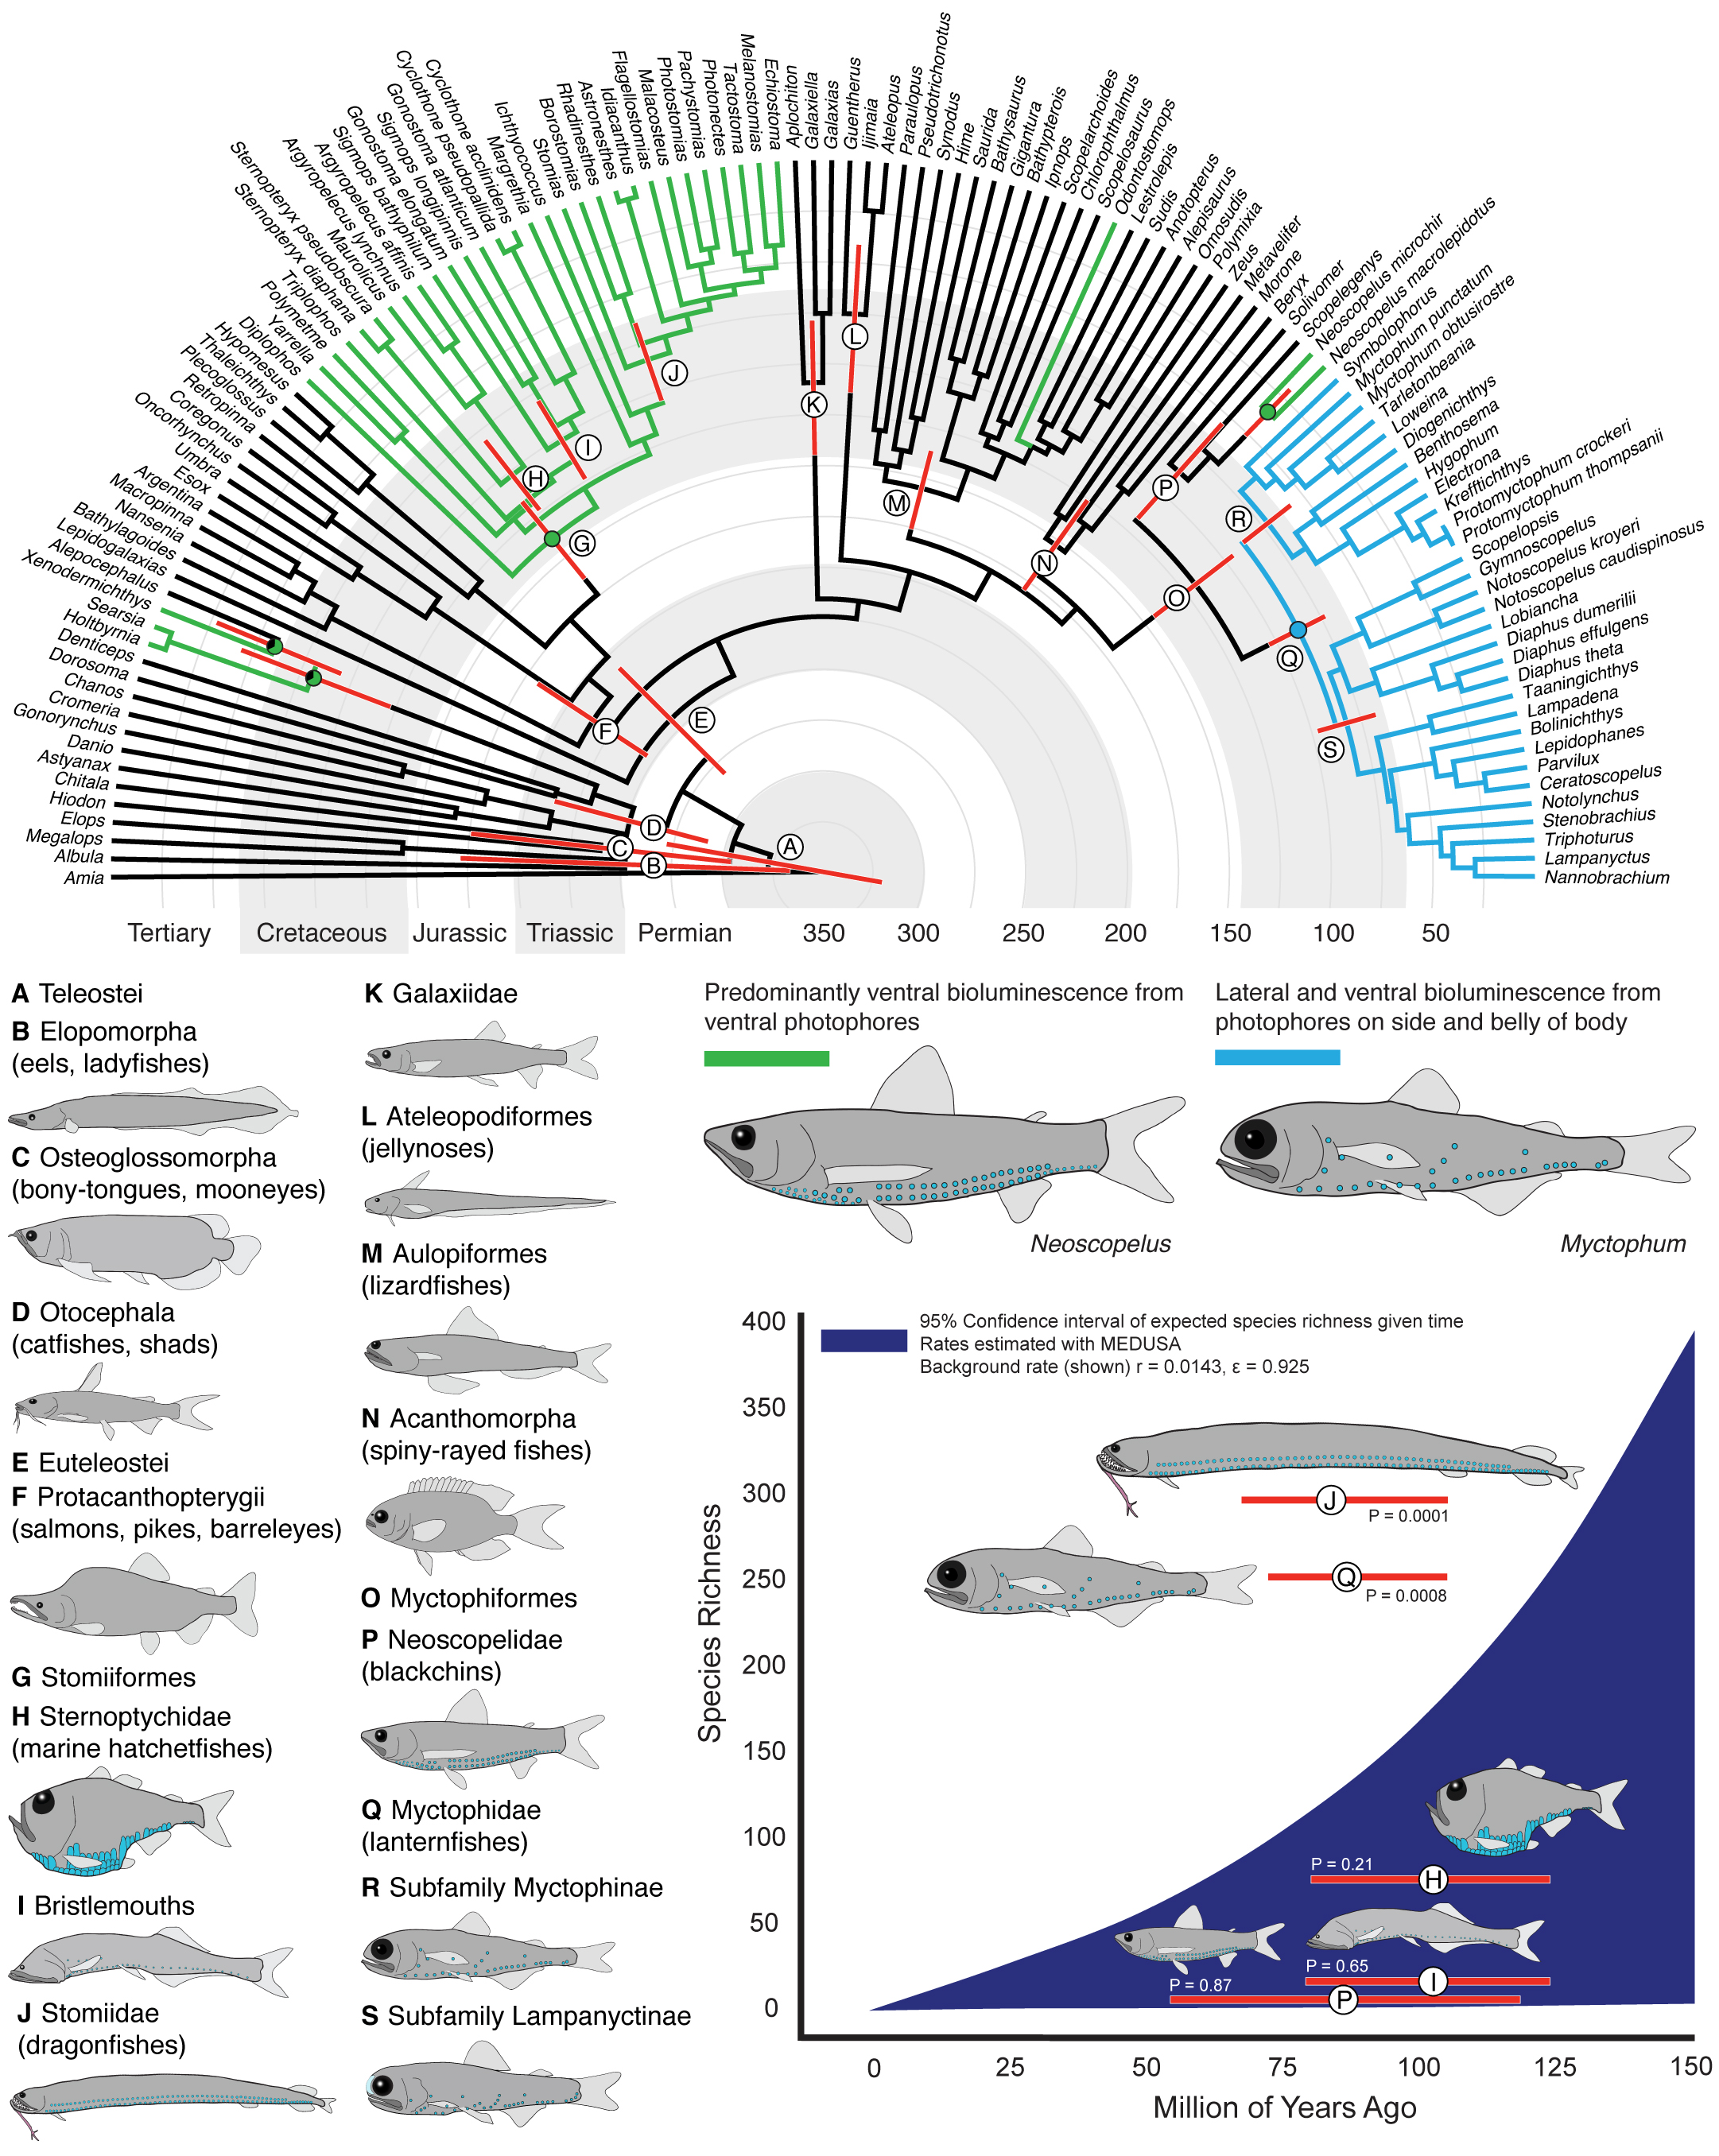 Bioluminescence impacts Diversification in Deep-sea Fishes - 18. Davis, M.P., Holcroft, N.I., Wiley, E.O., Sparks, J.S., and Smith, W.L. (2014). Species-Specific Bioluminescence Facilitates Speciation in the Deep Sea. Marine Biology. DOI: 10.1007/s00227-014-2406-x.Google ScholarOPEN ACCESS